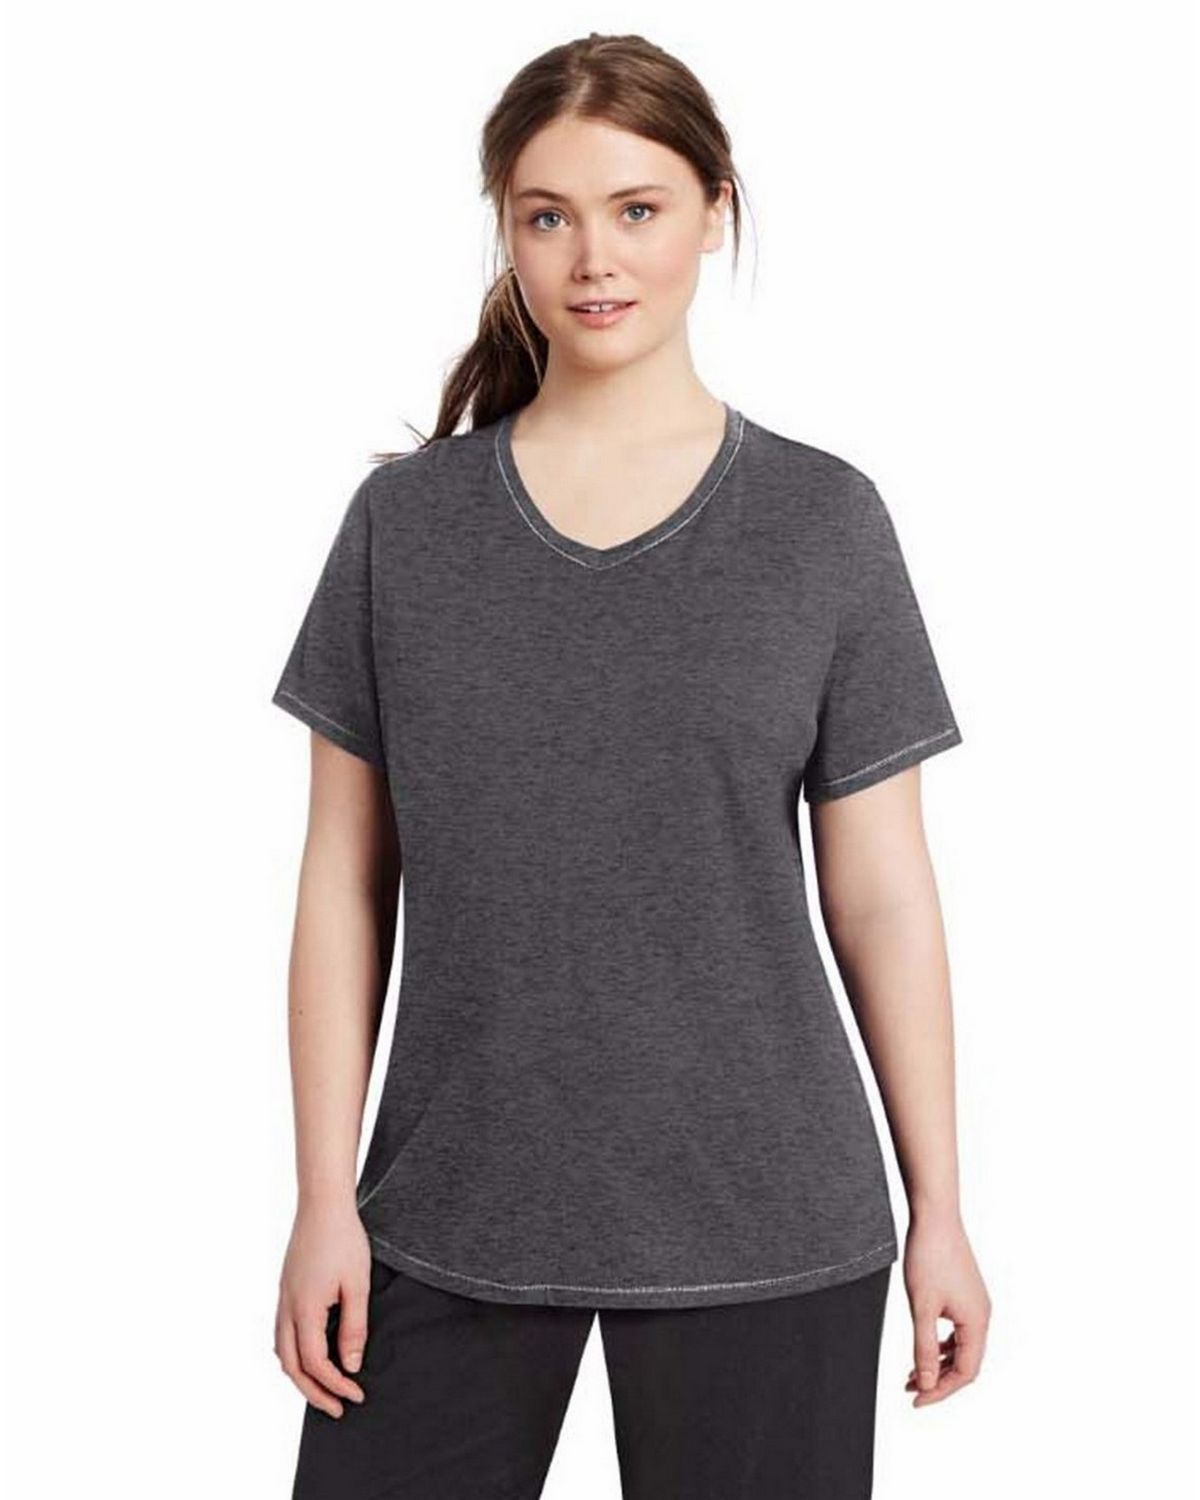 Champion QW1244 Womens Plus Jersey V-Neck - Steel Blue Heather - XL QW1244